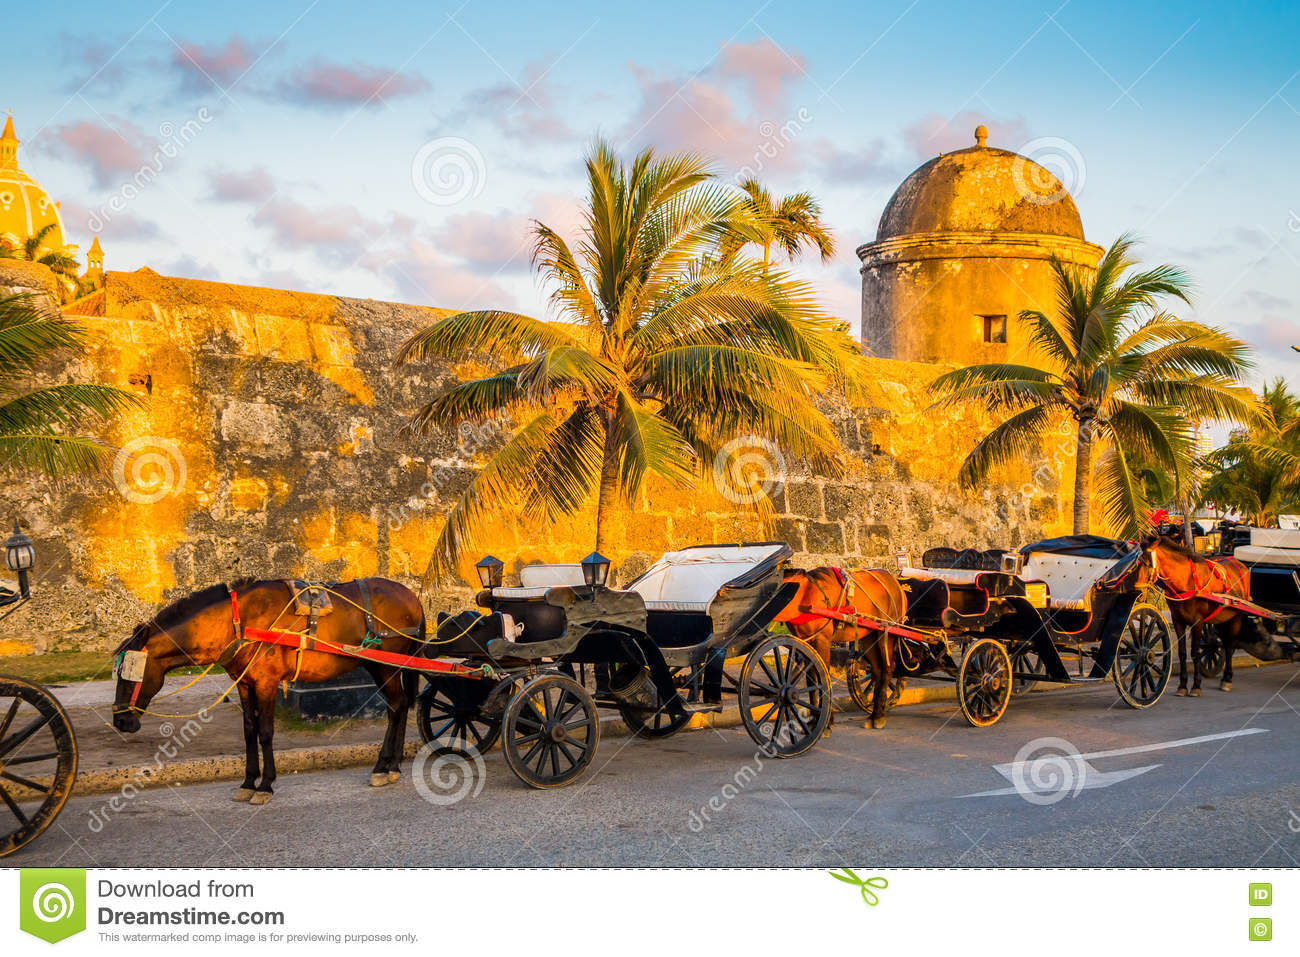 Horse drawn touristic carriages in the historic Spanish colonial city of Cartagena de Indias, Colombia